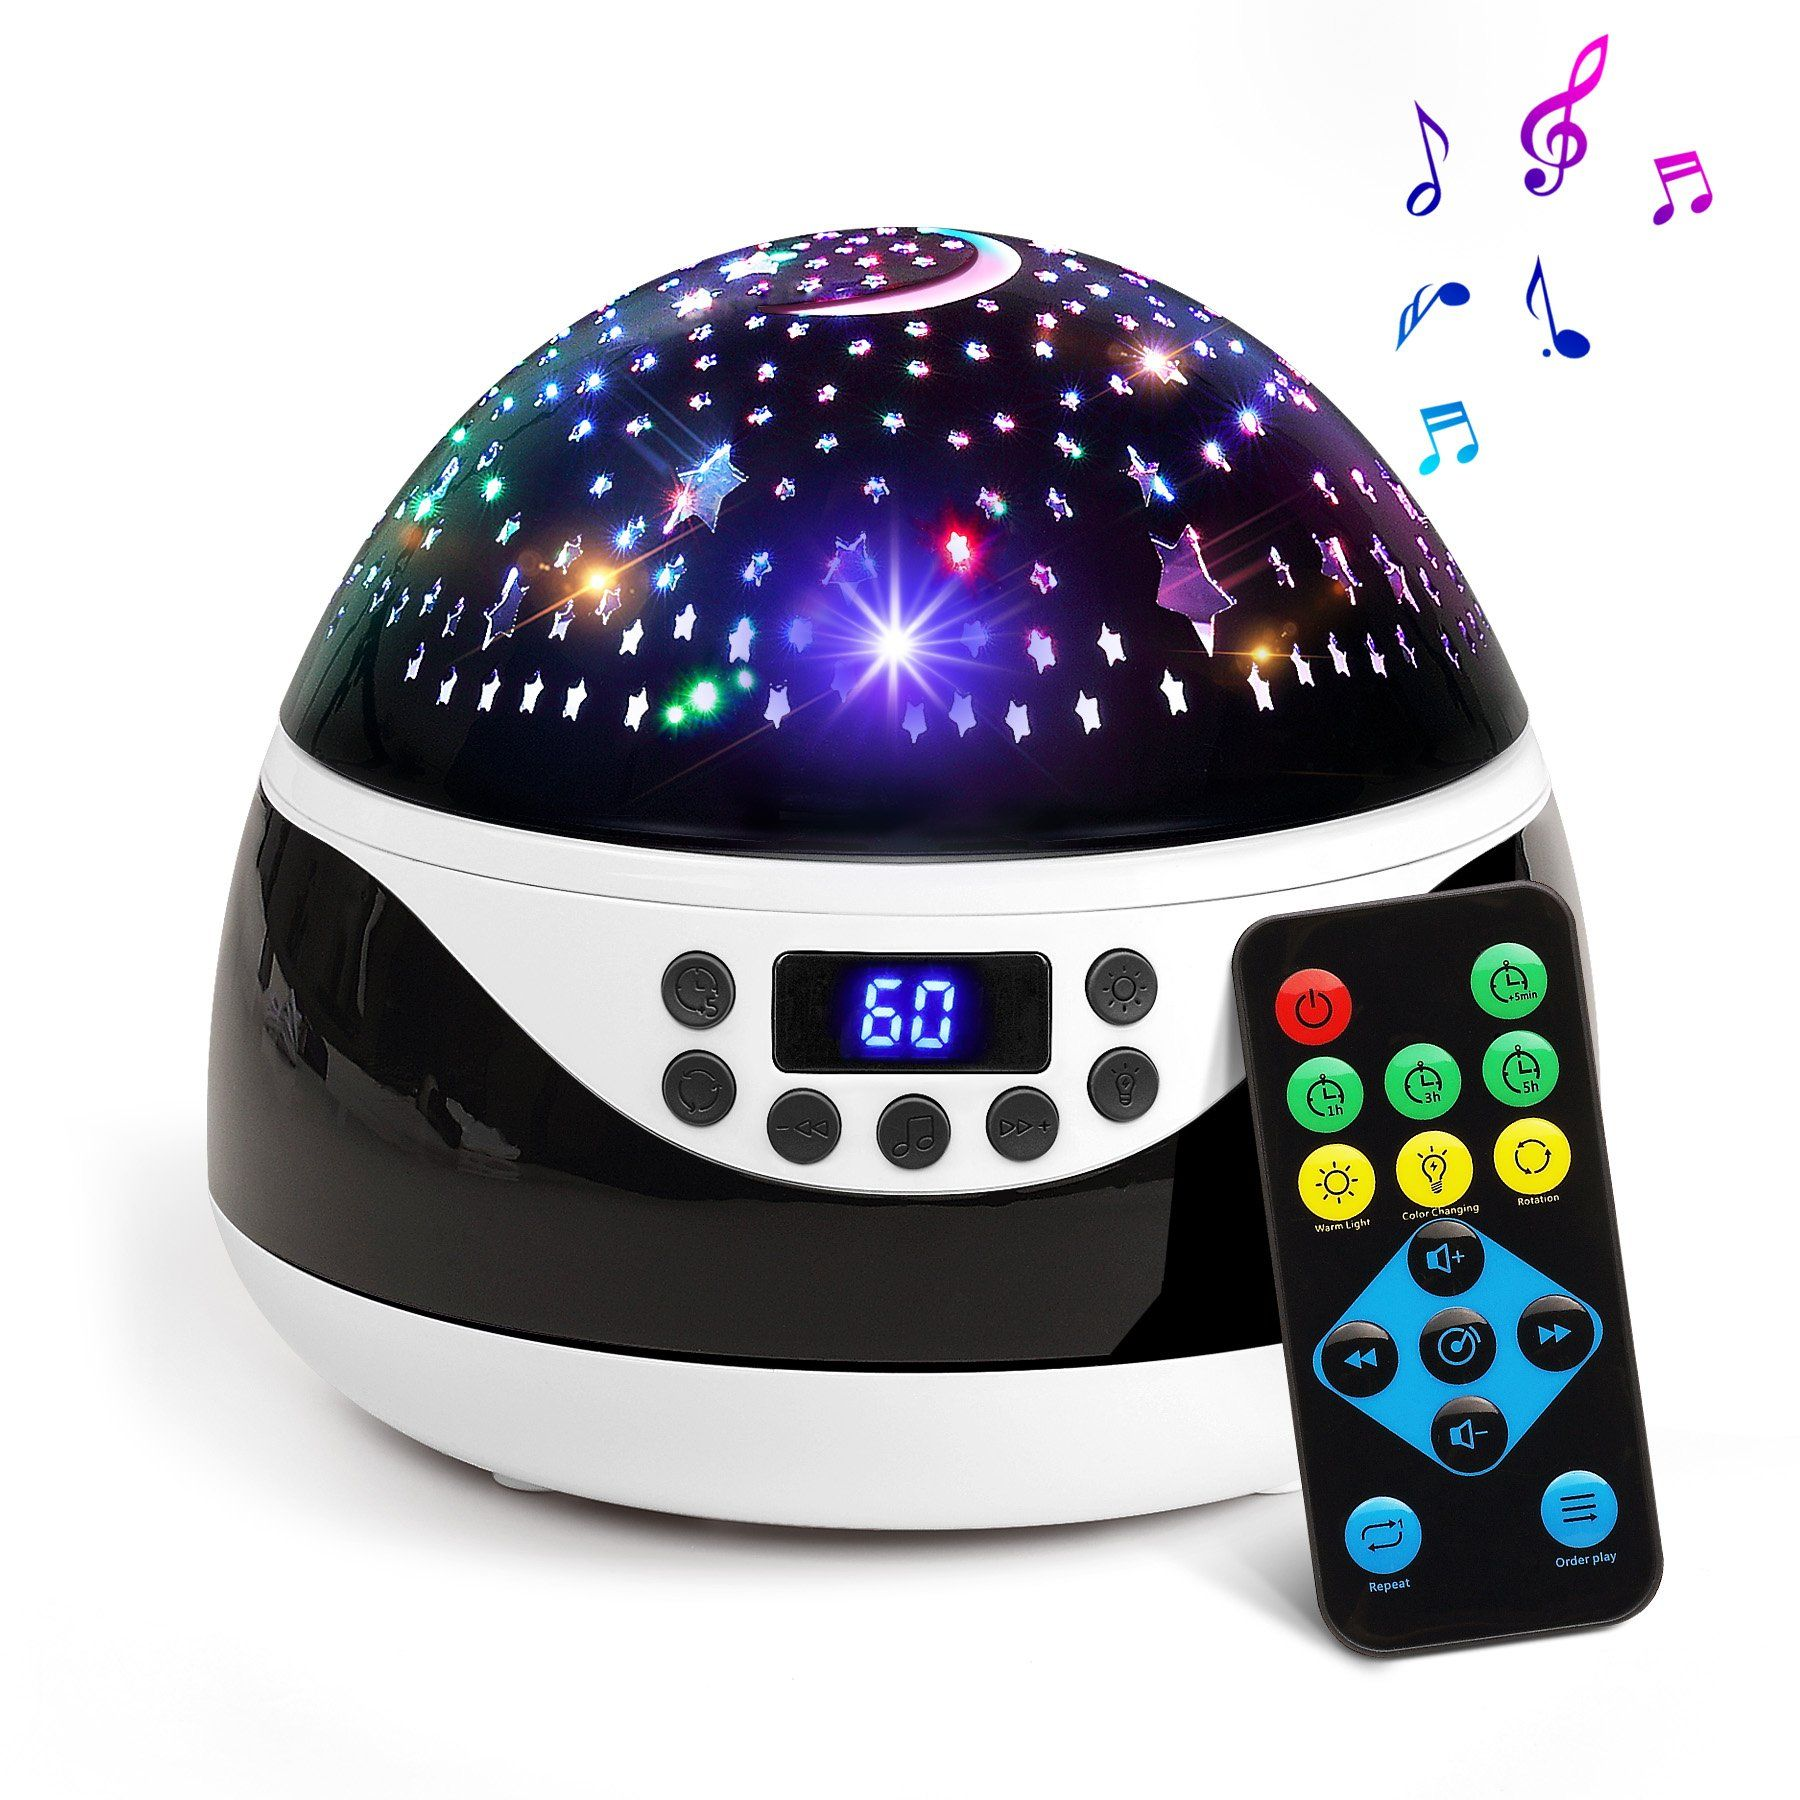 2018 Newest Baby Night Light Ananbros Remote Control Star